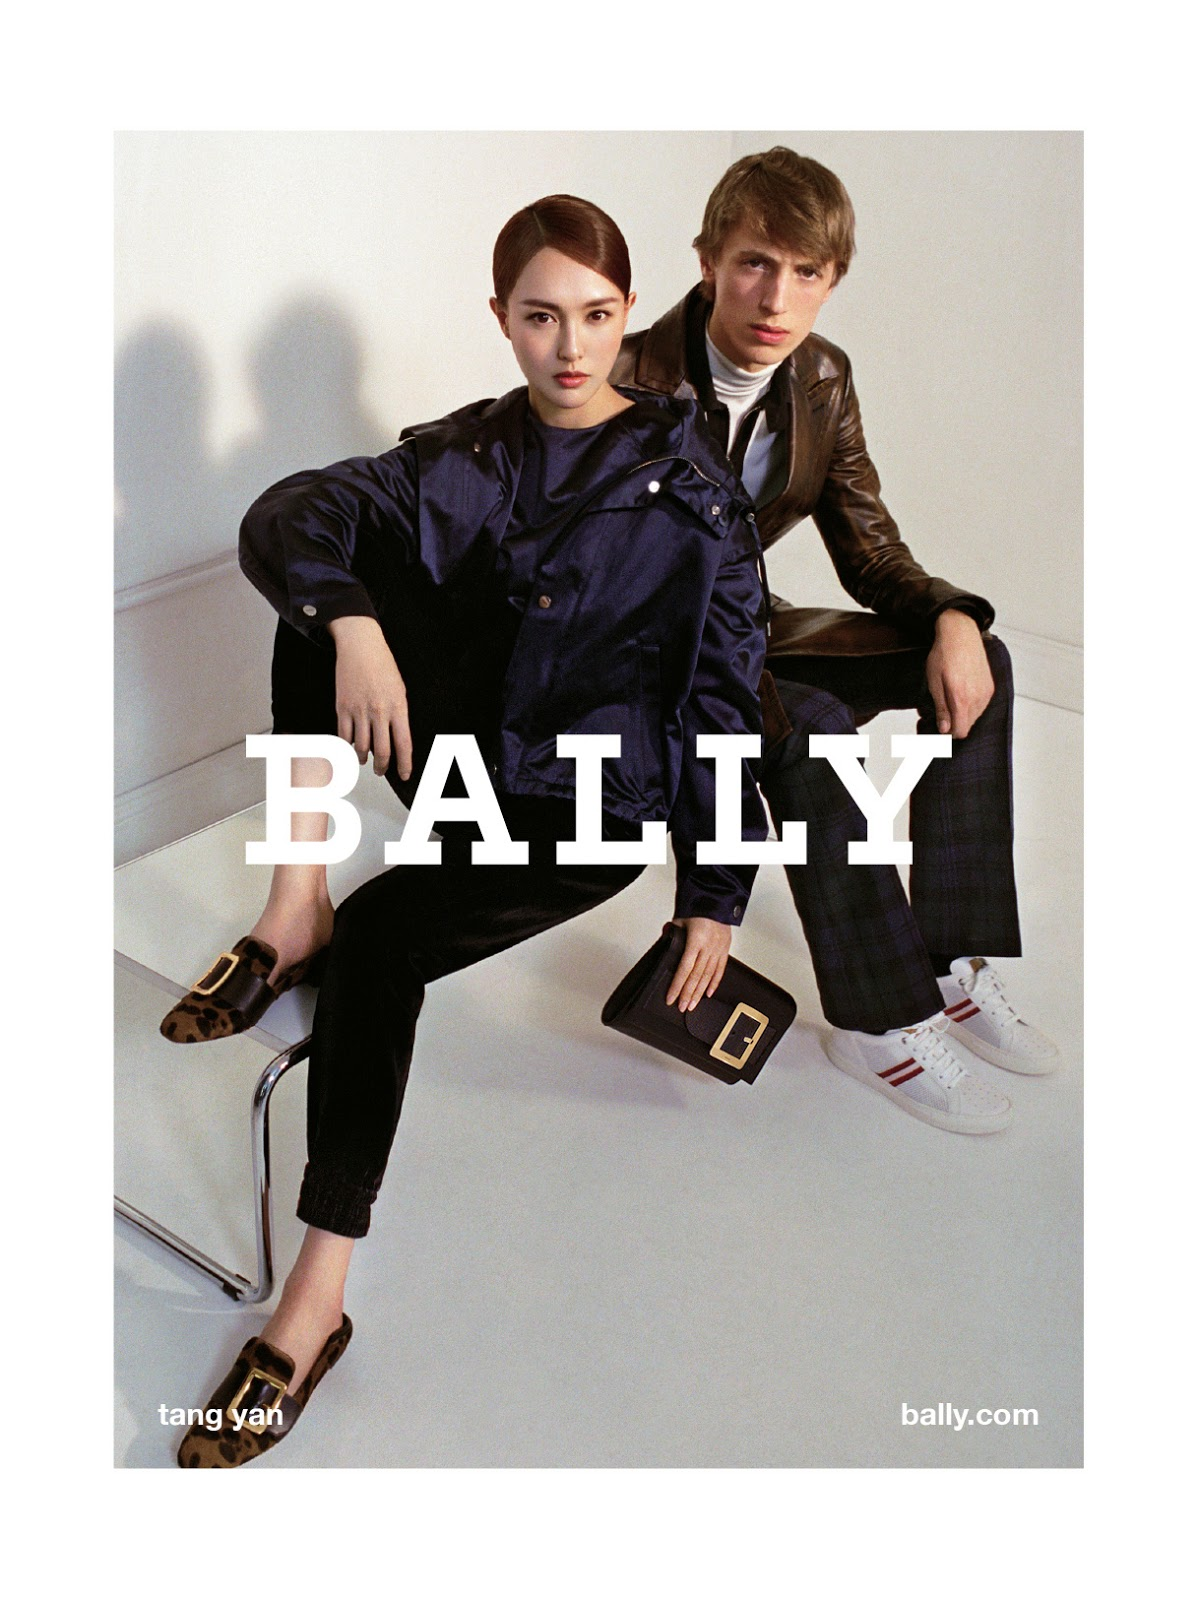 First Look: Bally's Fall/Winter 17 FULL Ad Campaign With Tang Yan